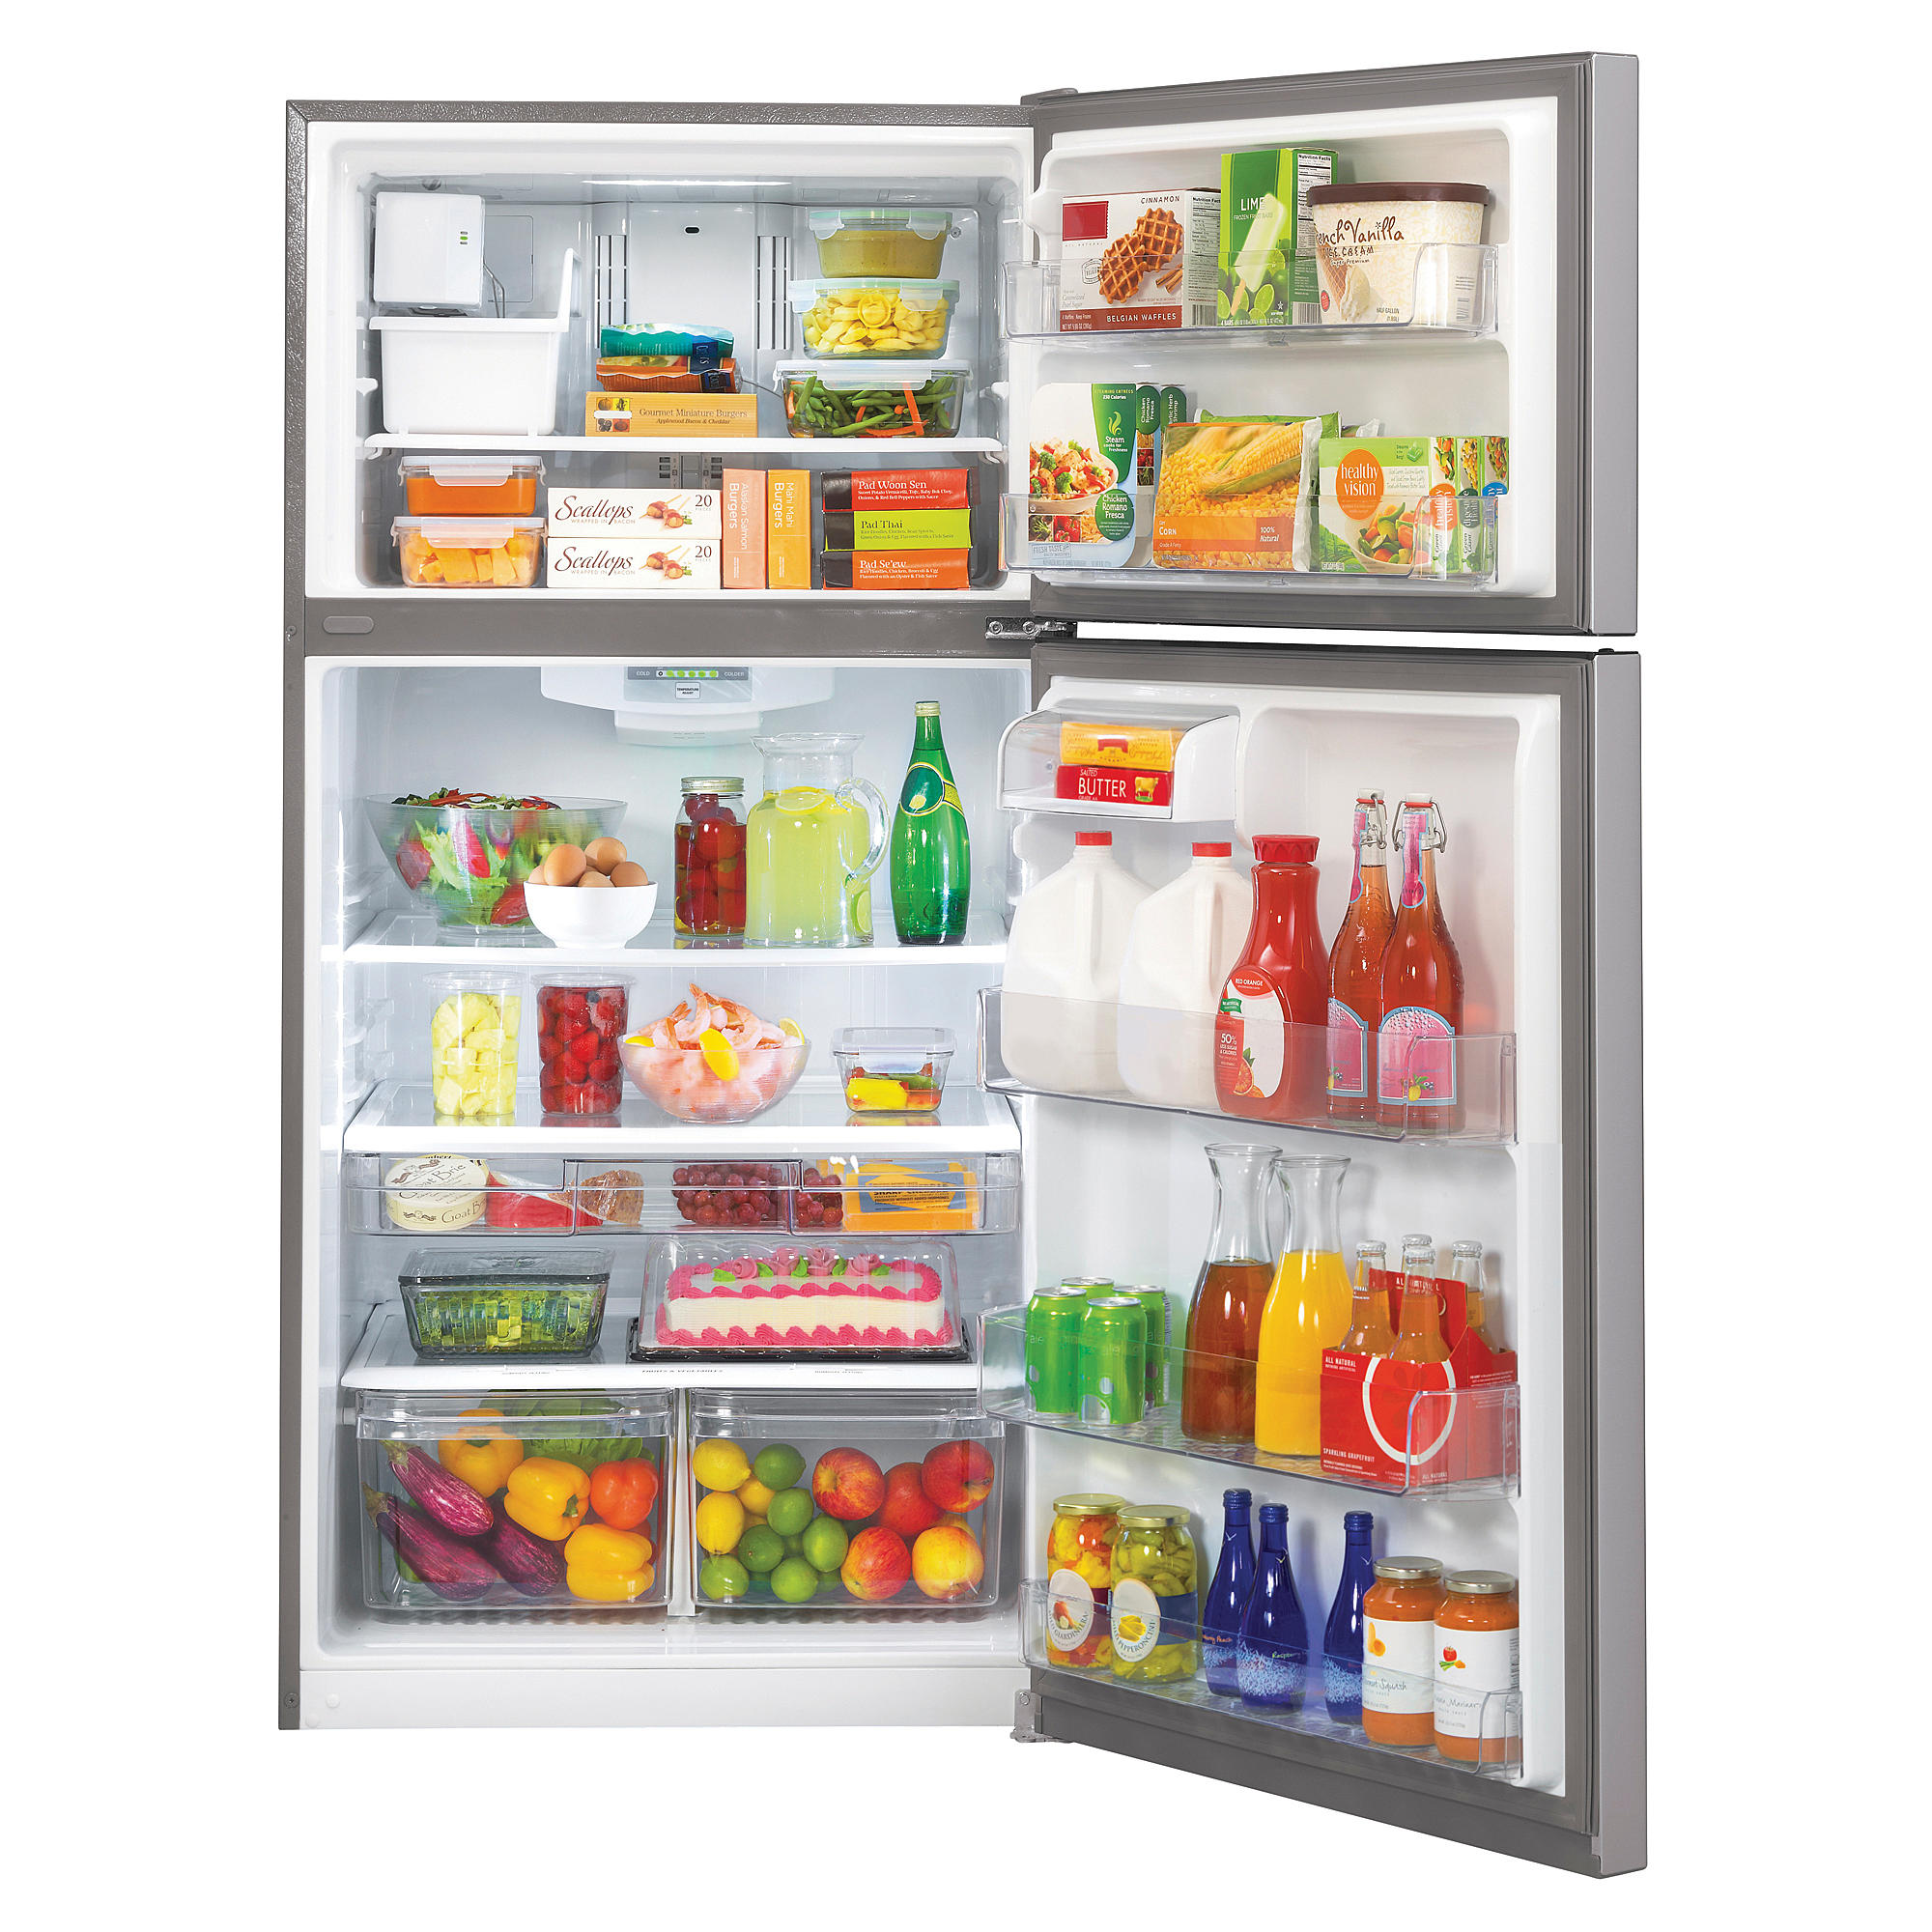 Save More Than $100 On An LG Refrigerator At Sears Over Presidentsu0027 Day  Weekend.